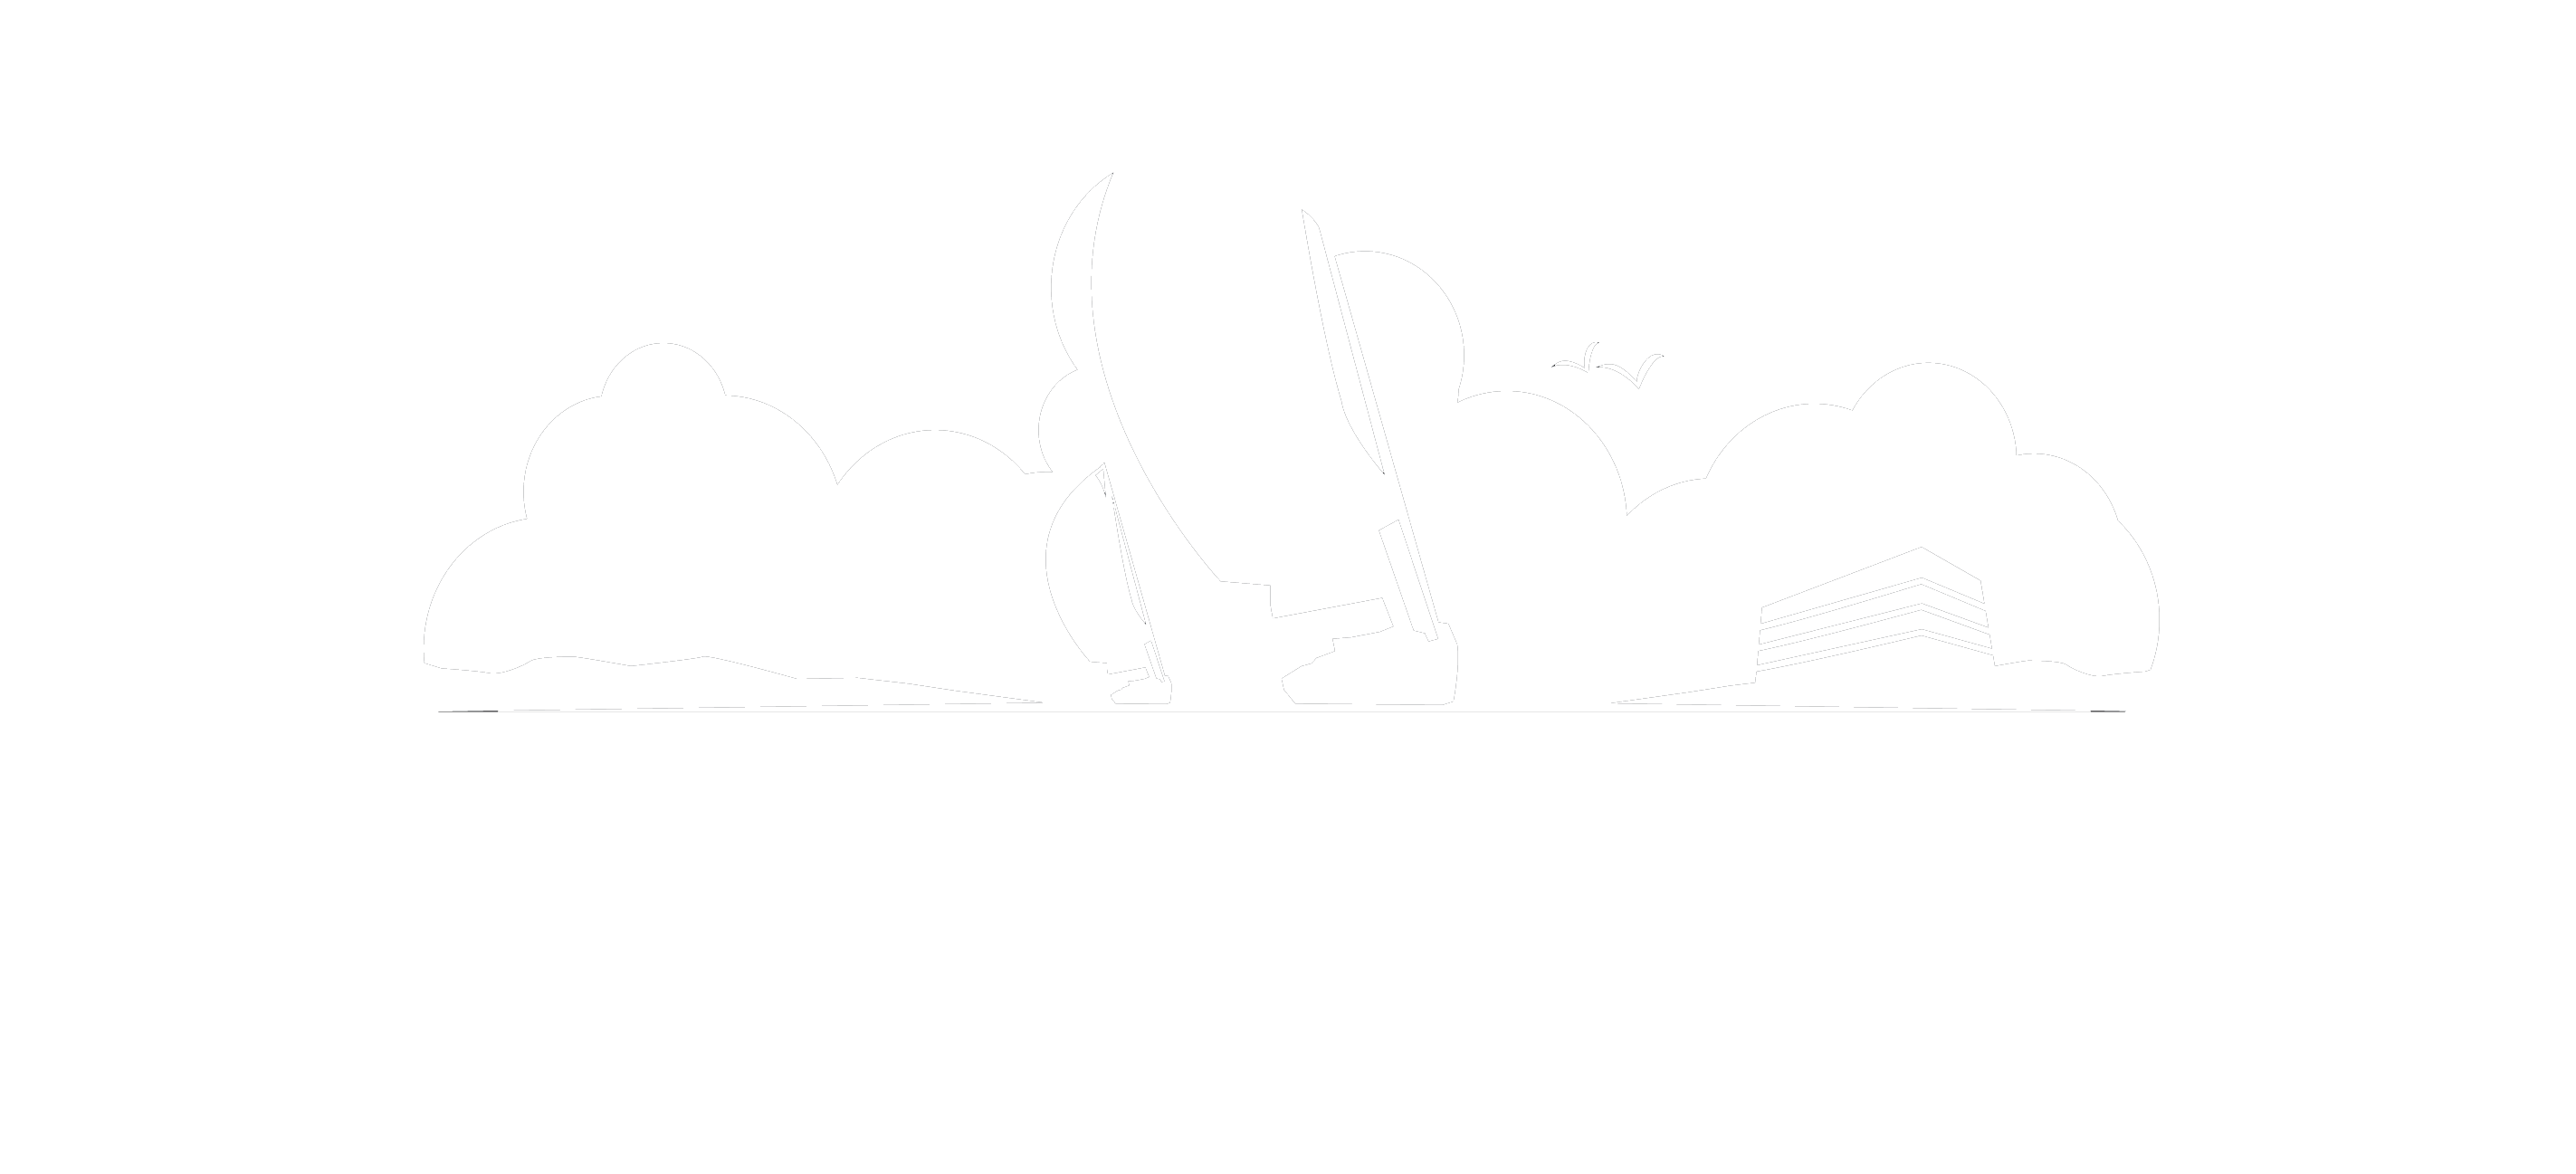 City of Seabrook Logo